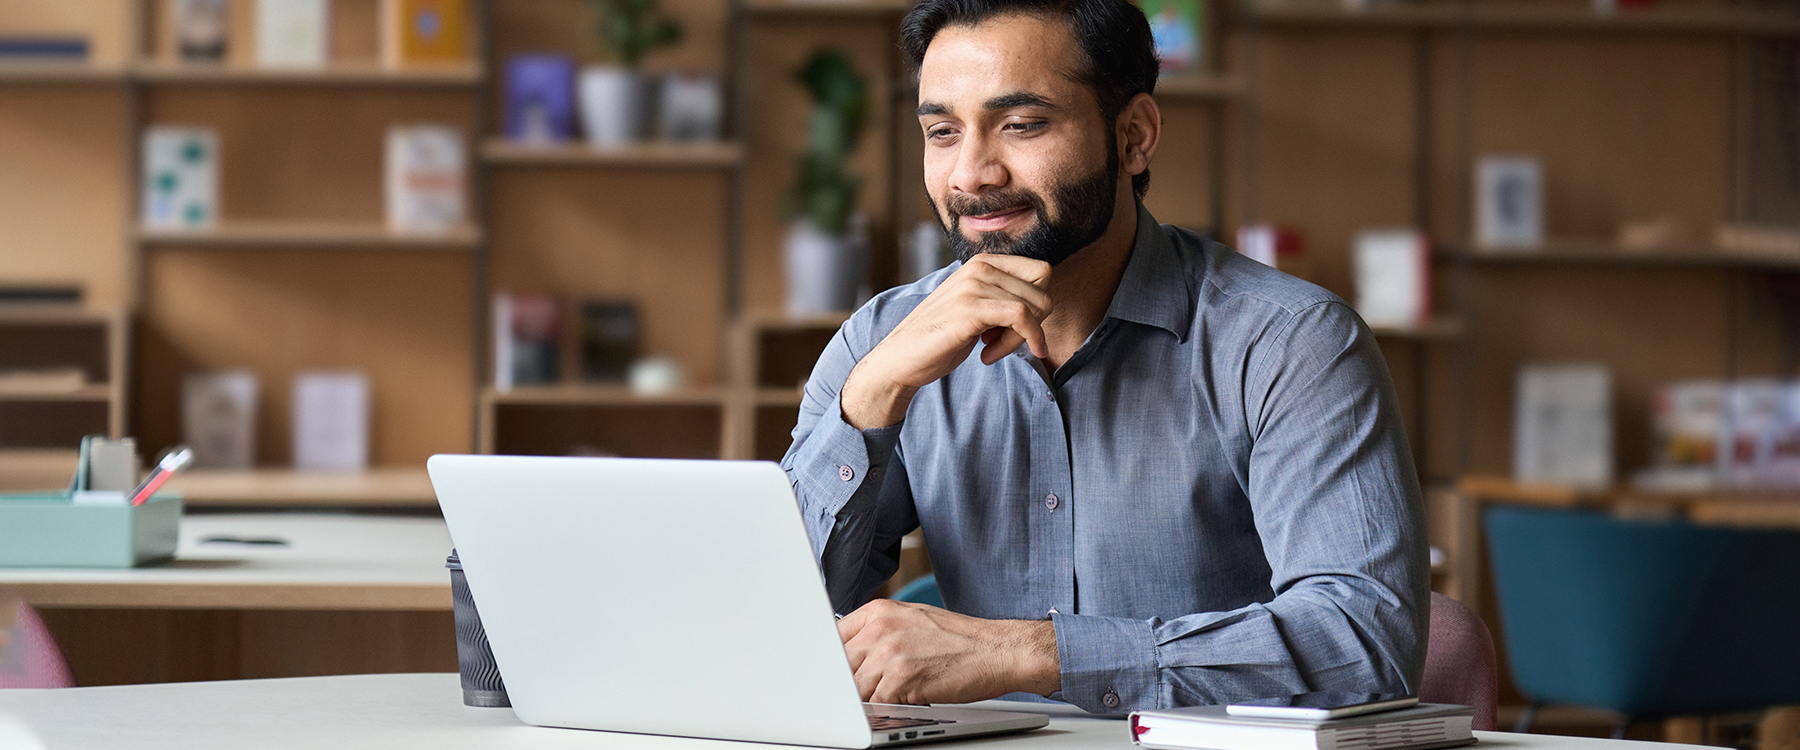 Man with beard and button up smiling at laptop in office